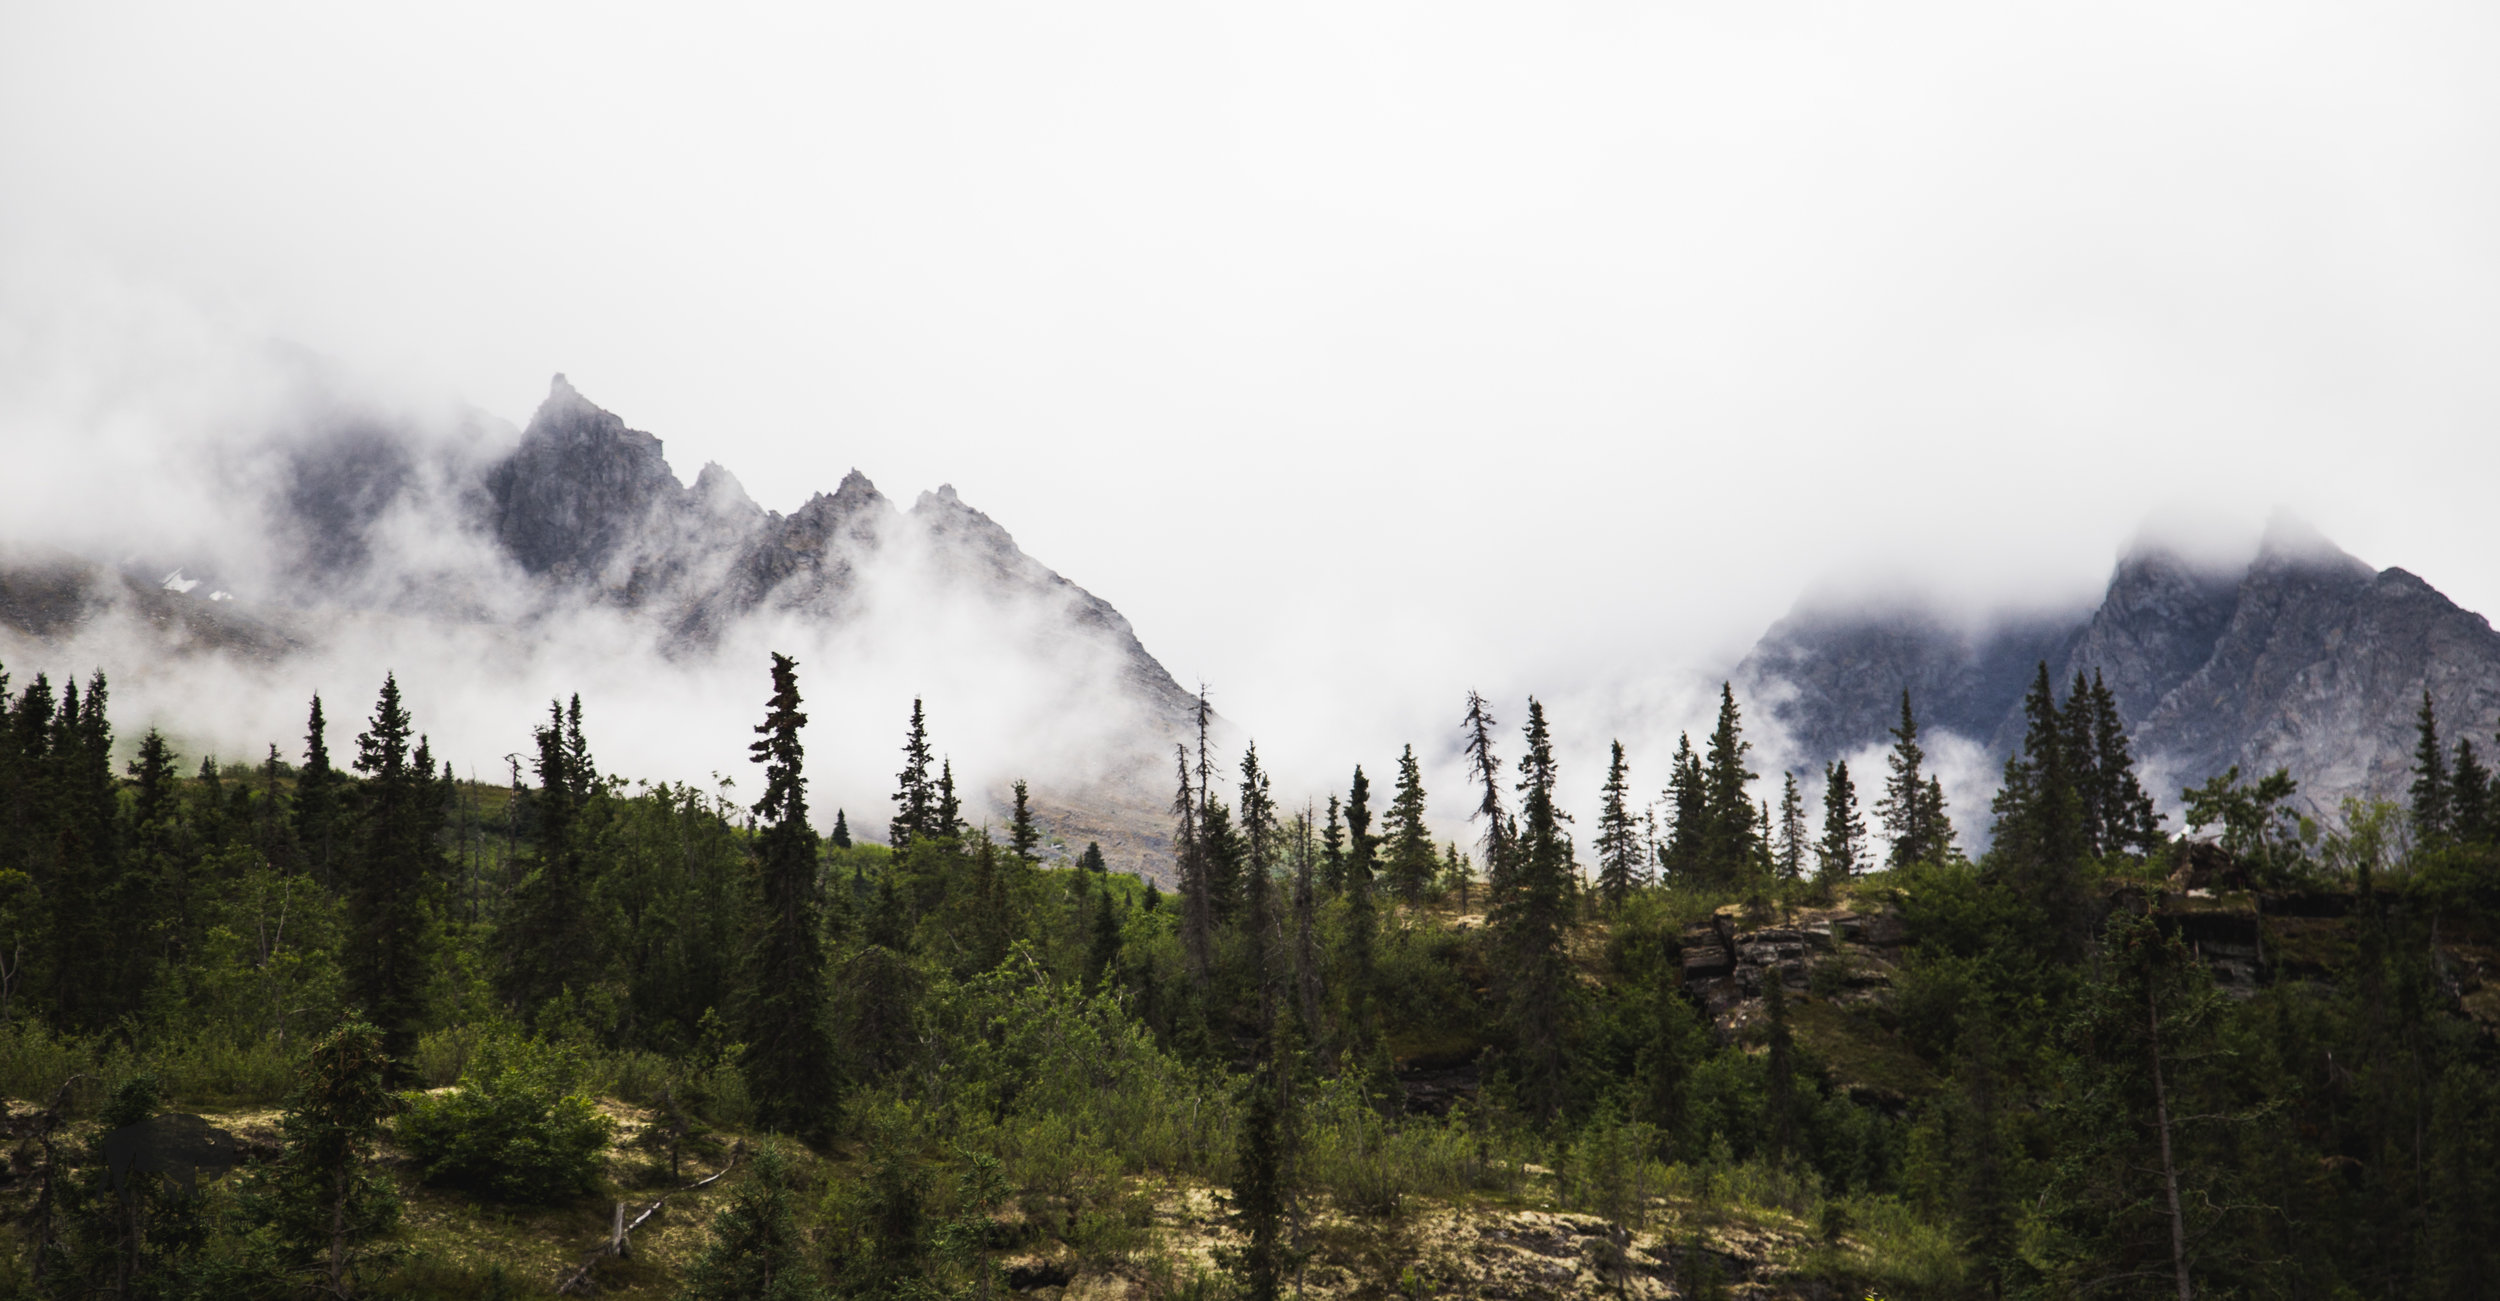 Peaks showing through the mist, the best visuals I got of the surrounding mountains on the way in and out of Valdez.